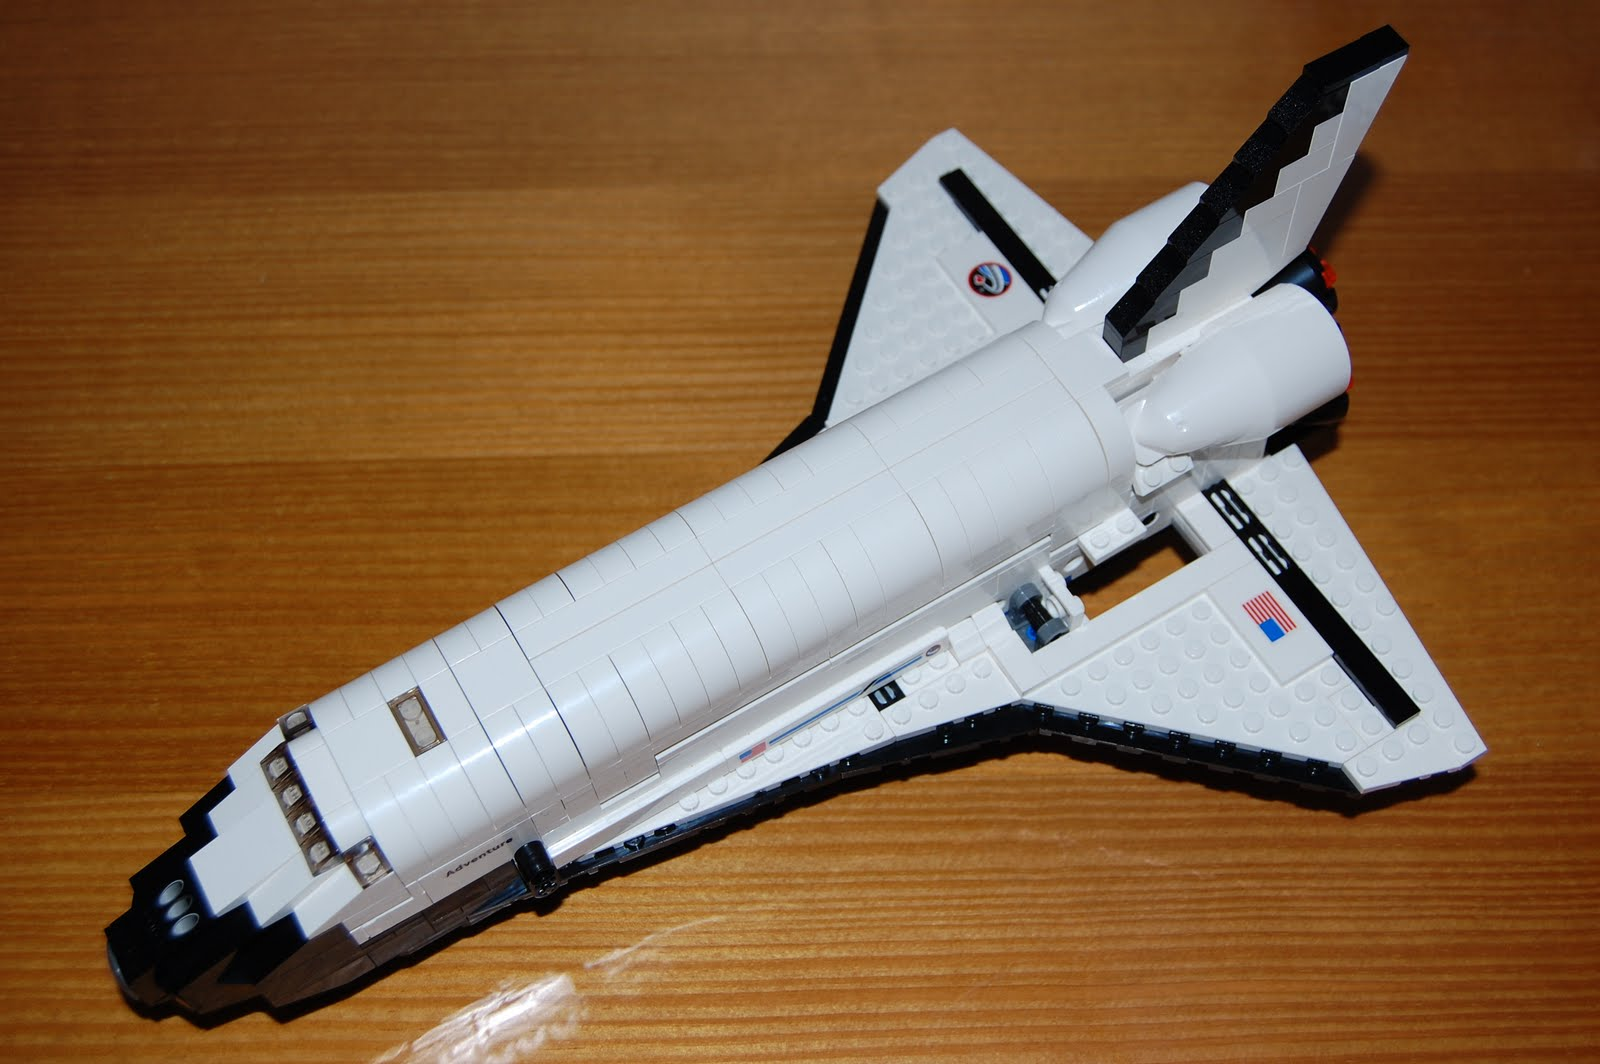 lego space shuttle a - photo #39